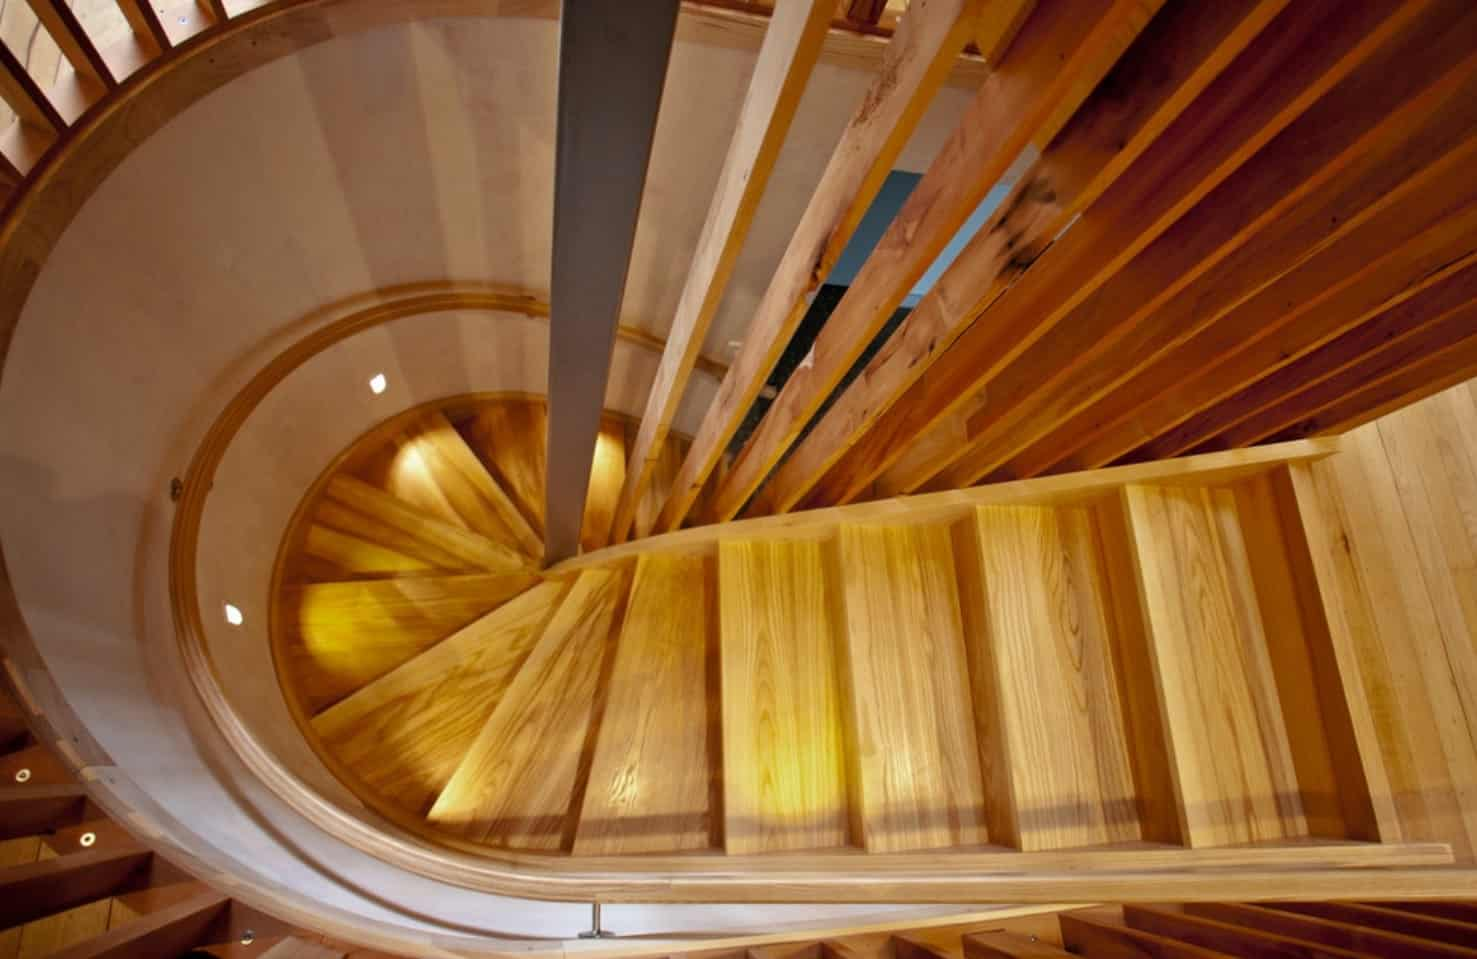 20 180 Degree Turn Staircase Ideas Photos